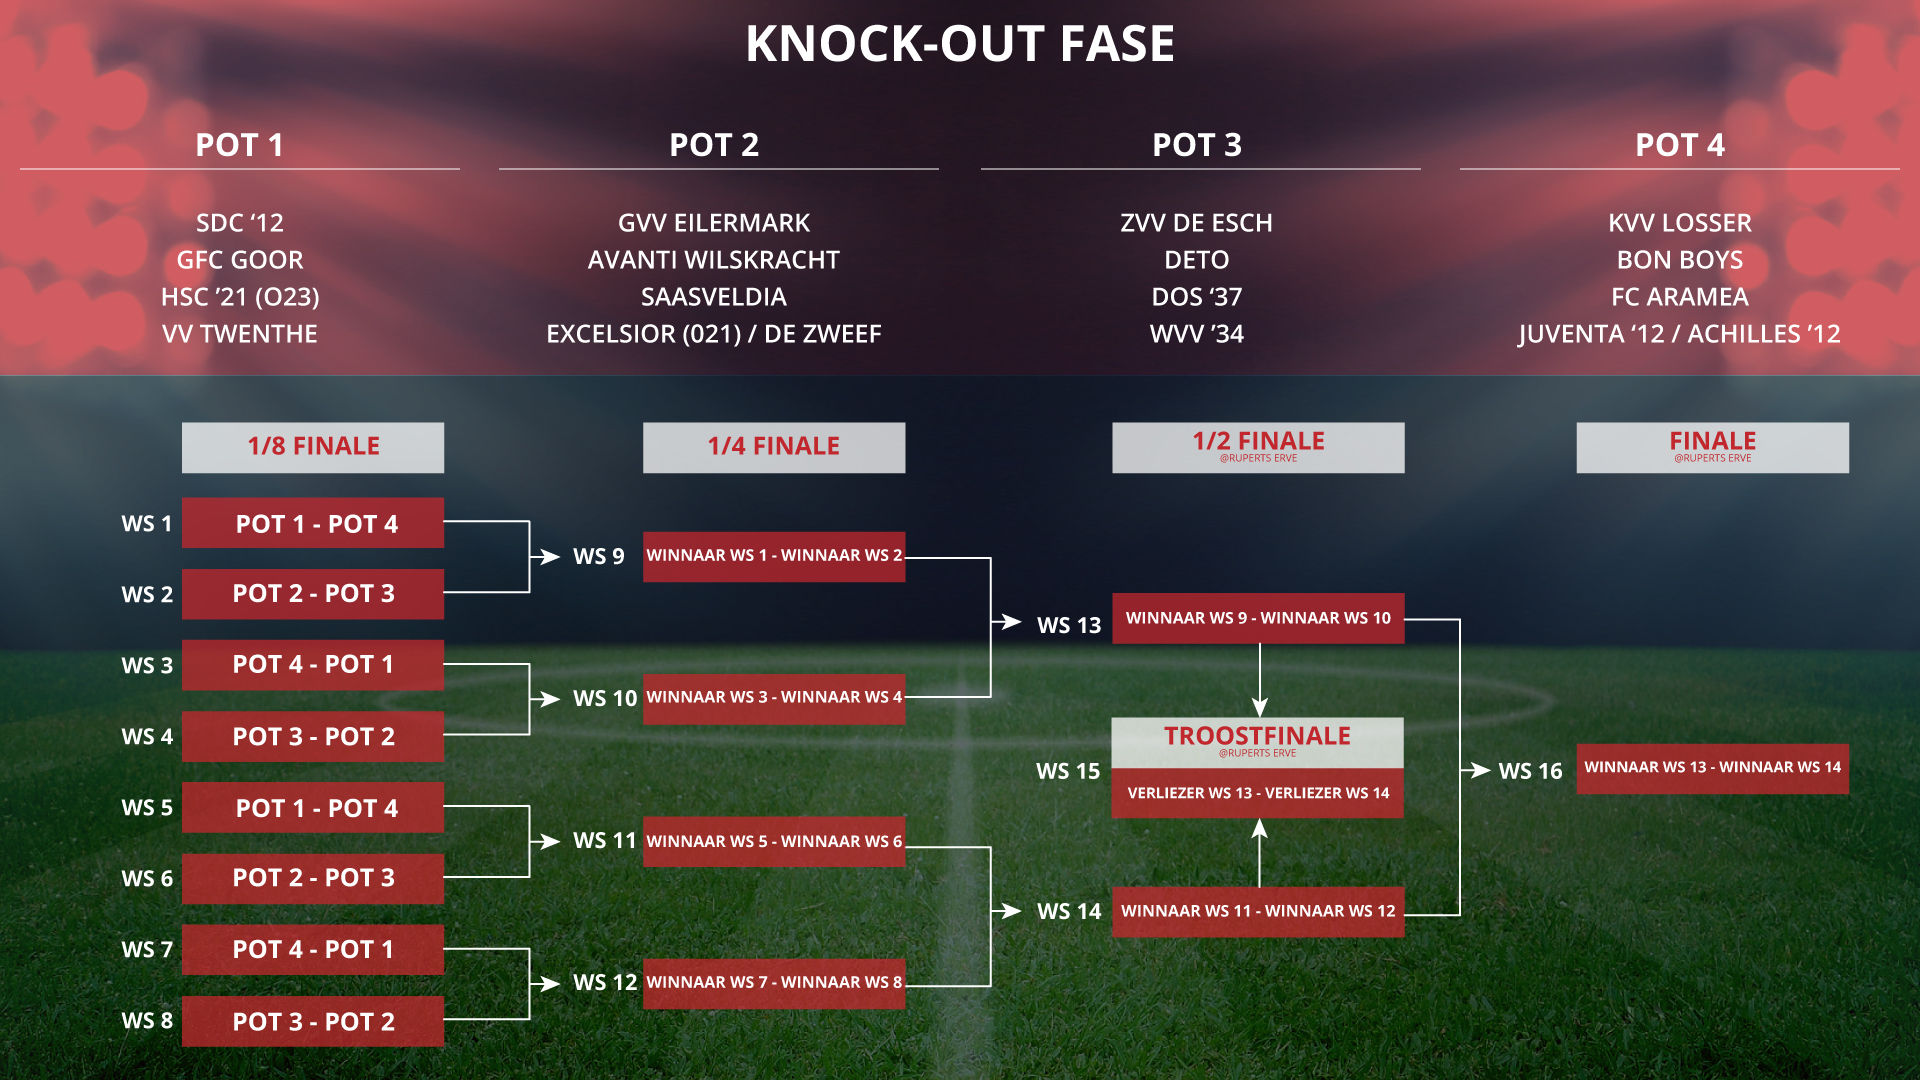 Loting knock out fase